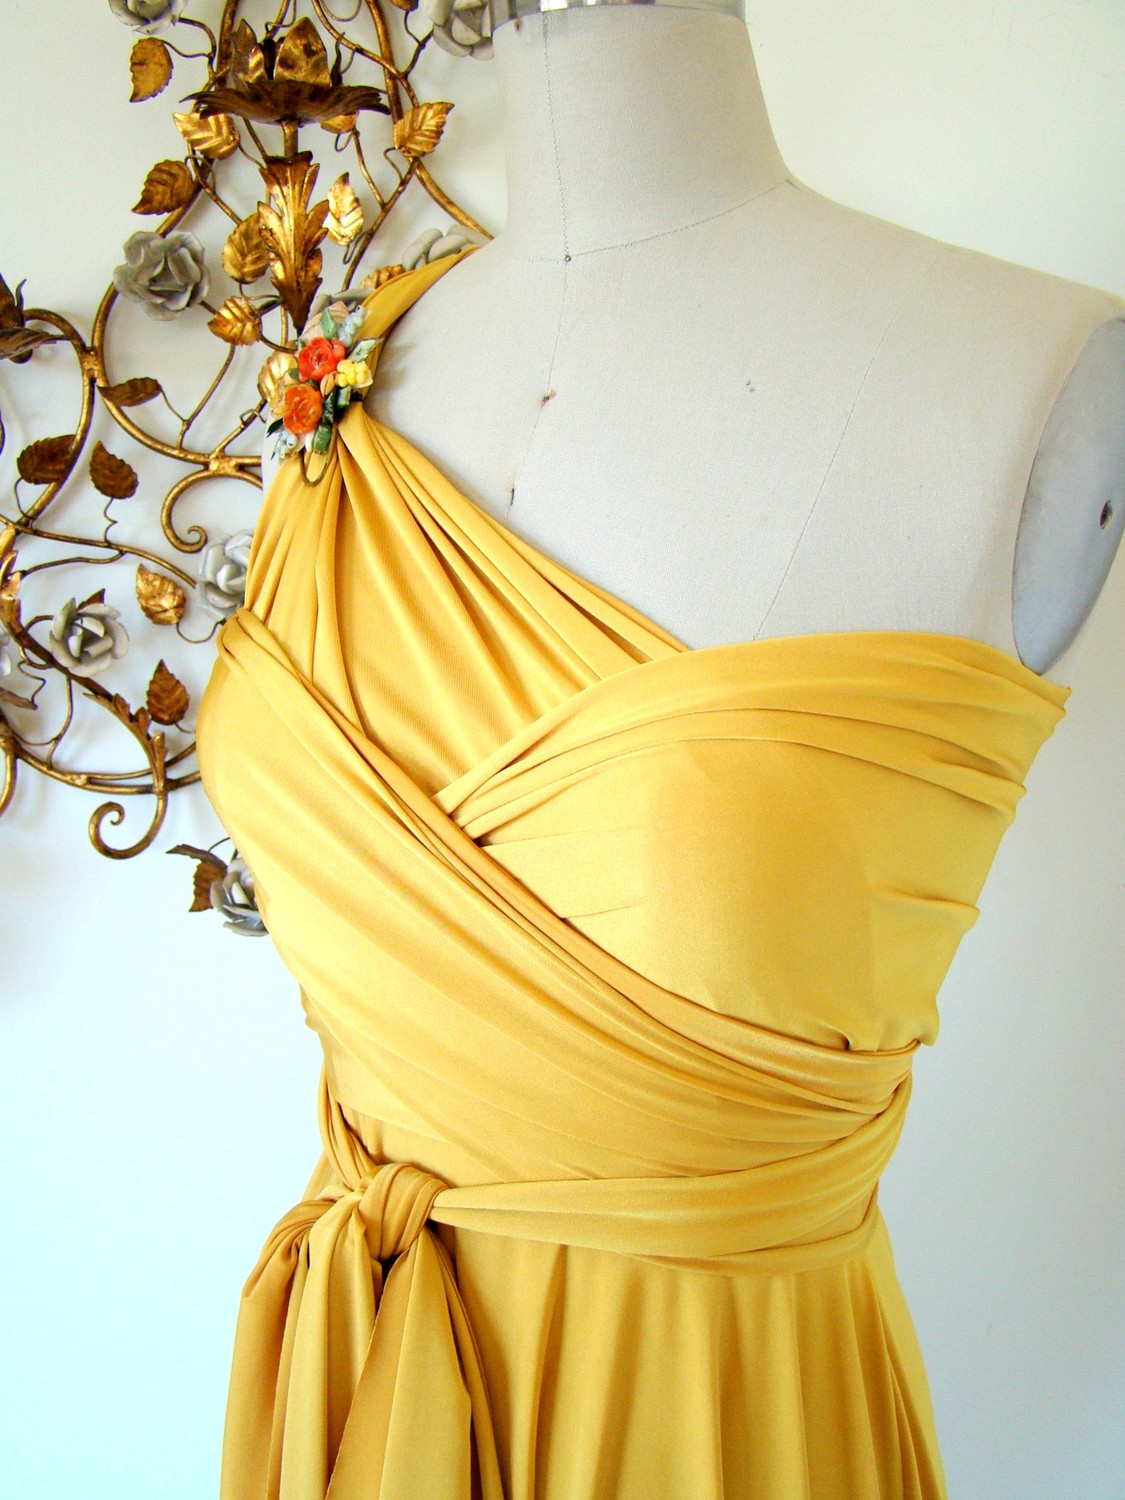 10-bridesmaids-dresses-2011-golden-sunshine-yellow-sweetheart-neckline_0.original